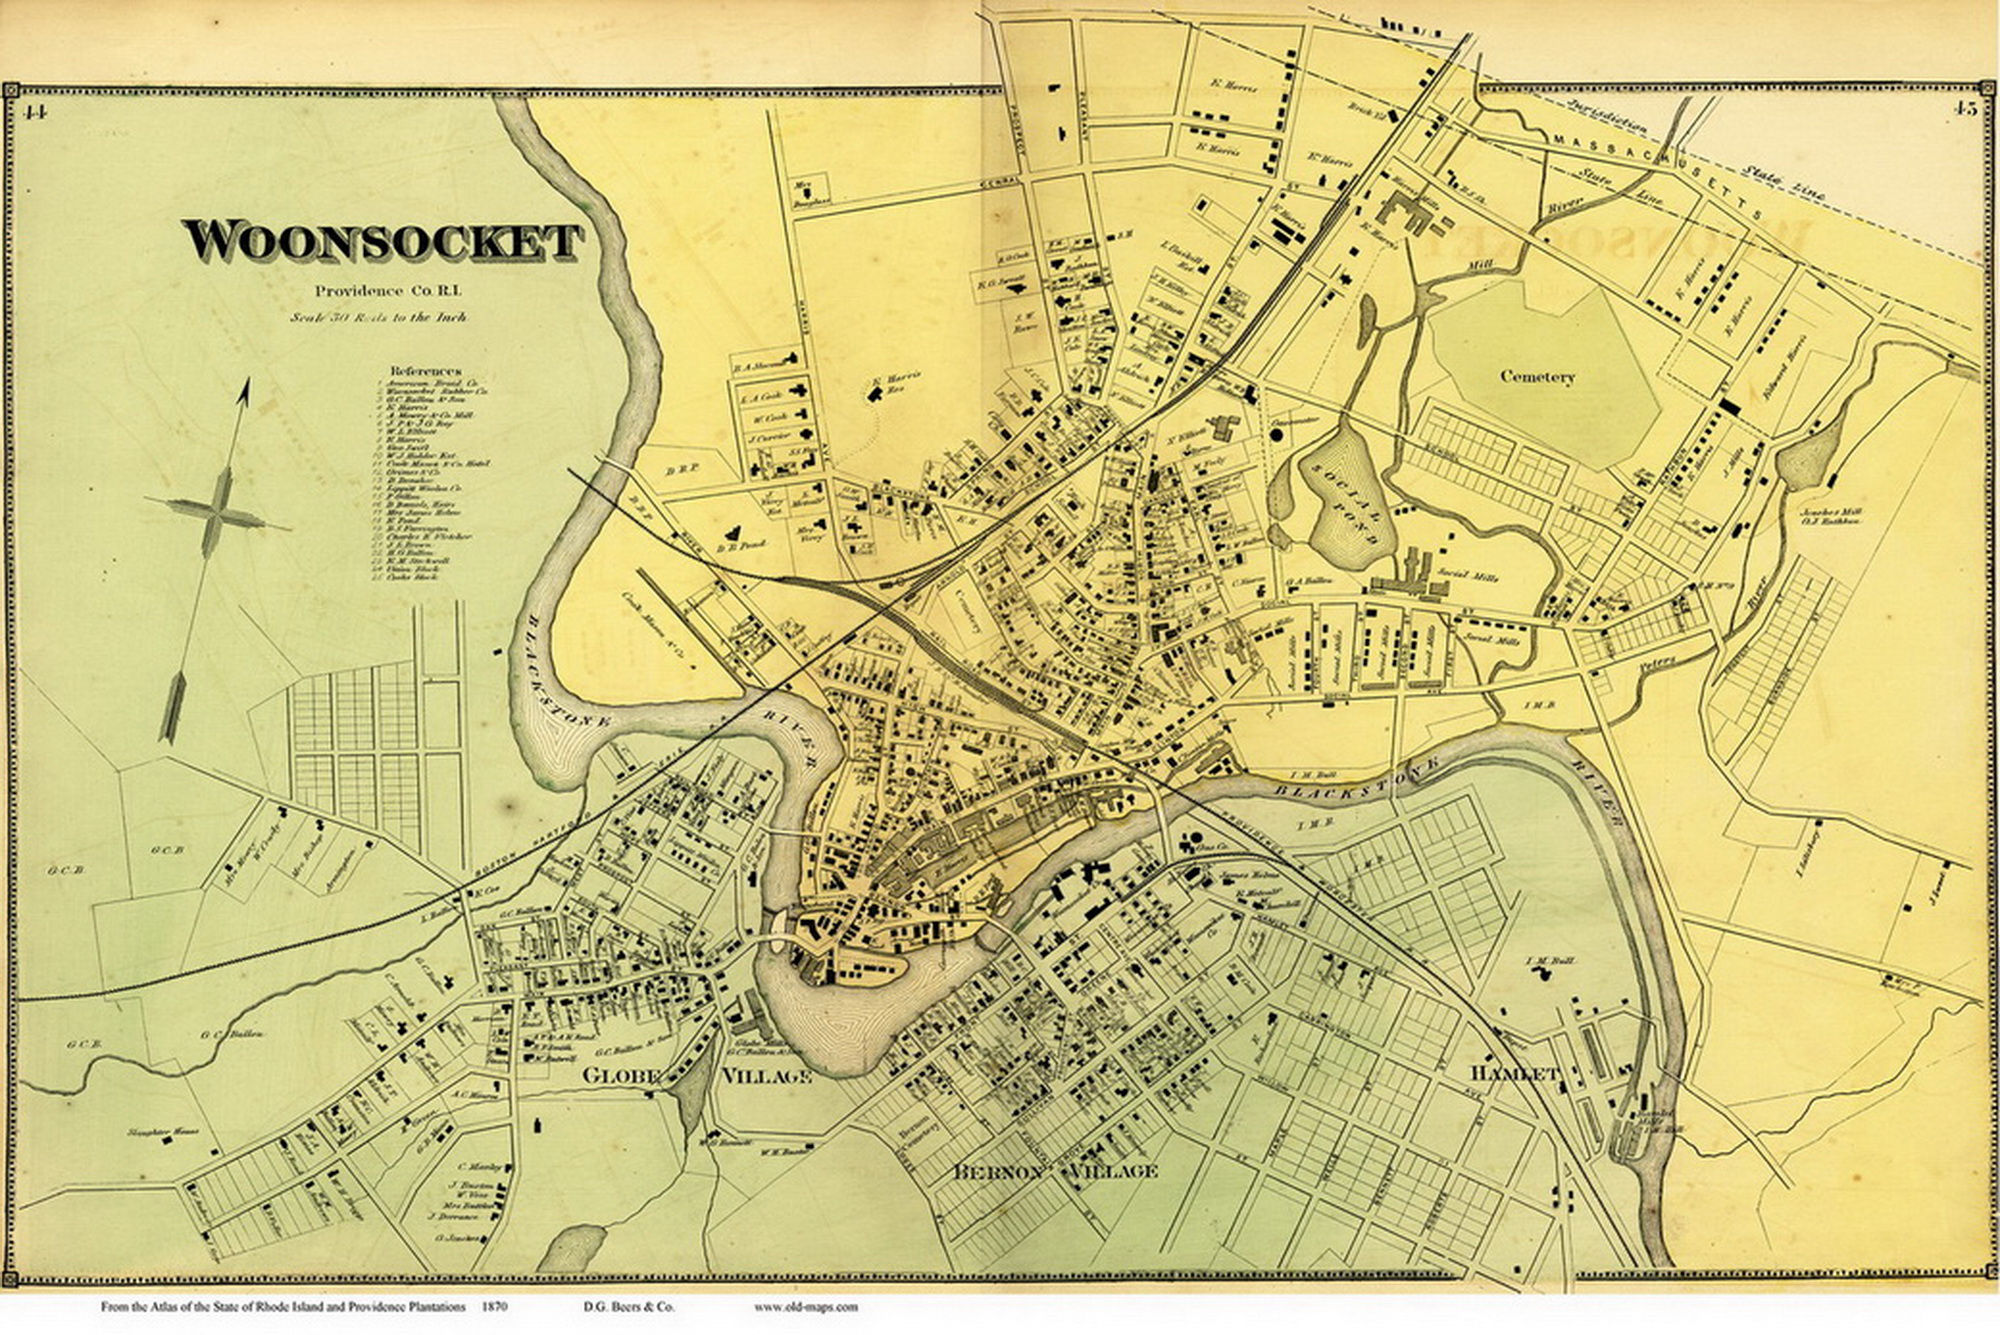 Woonsocket Village Rhode Island 1870 Old Town Map Reprint OLD MAPS